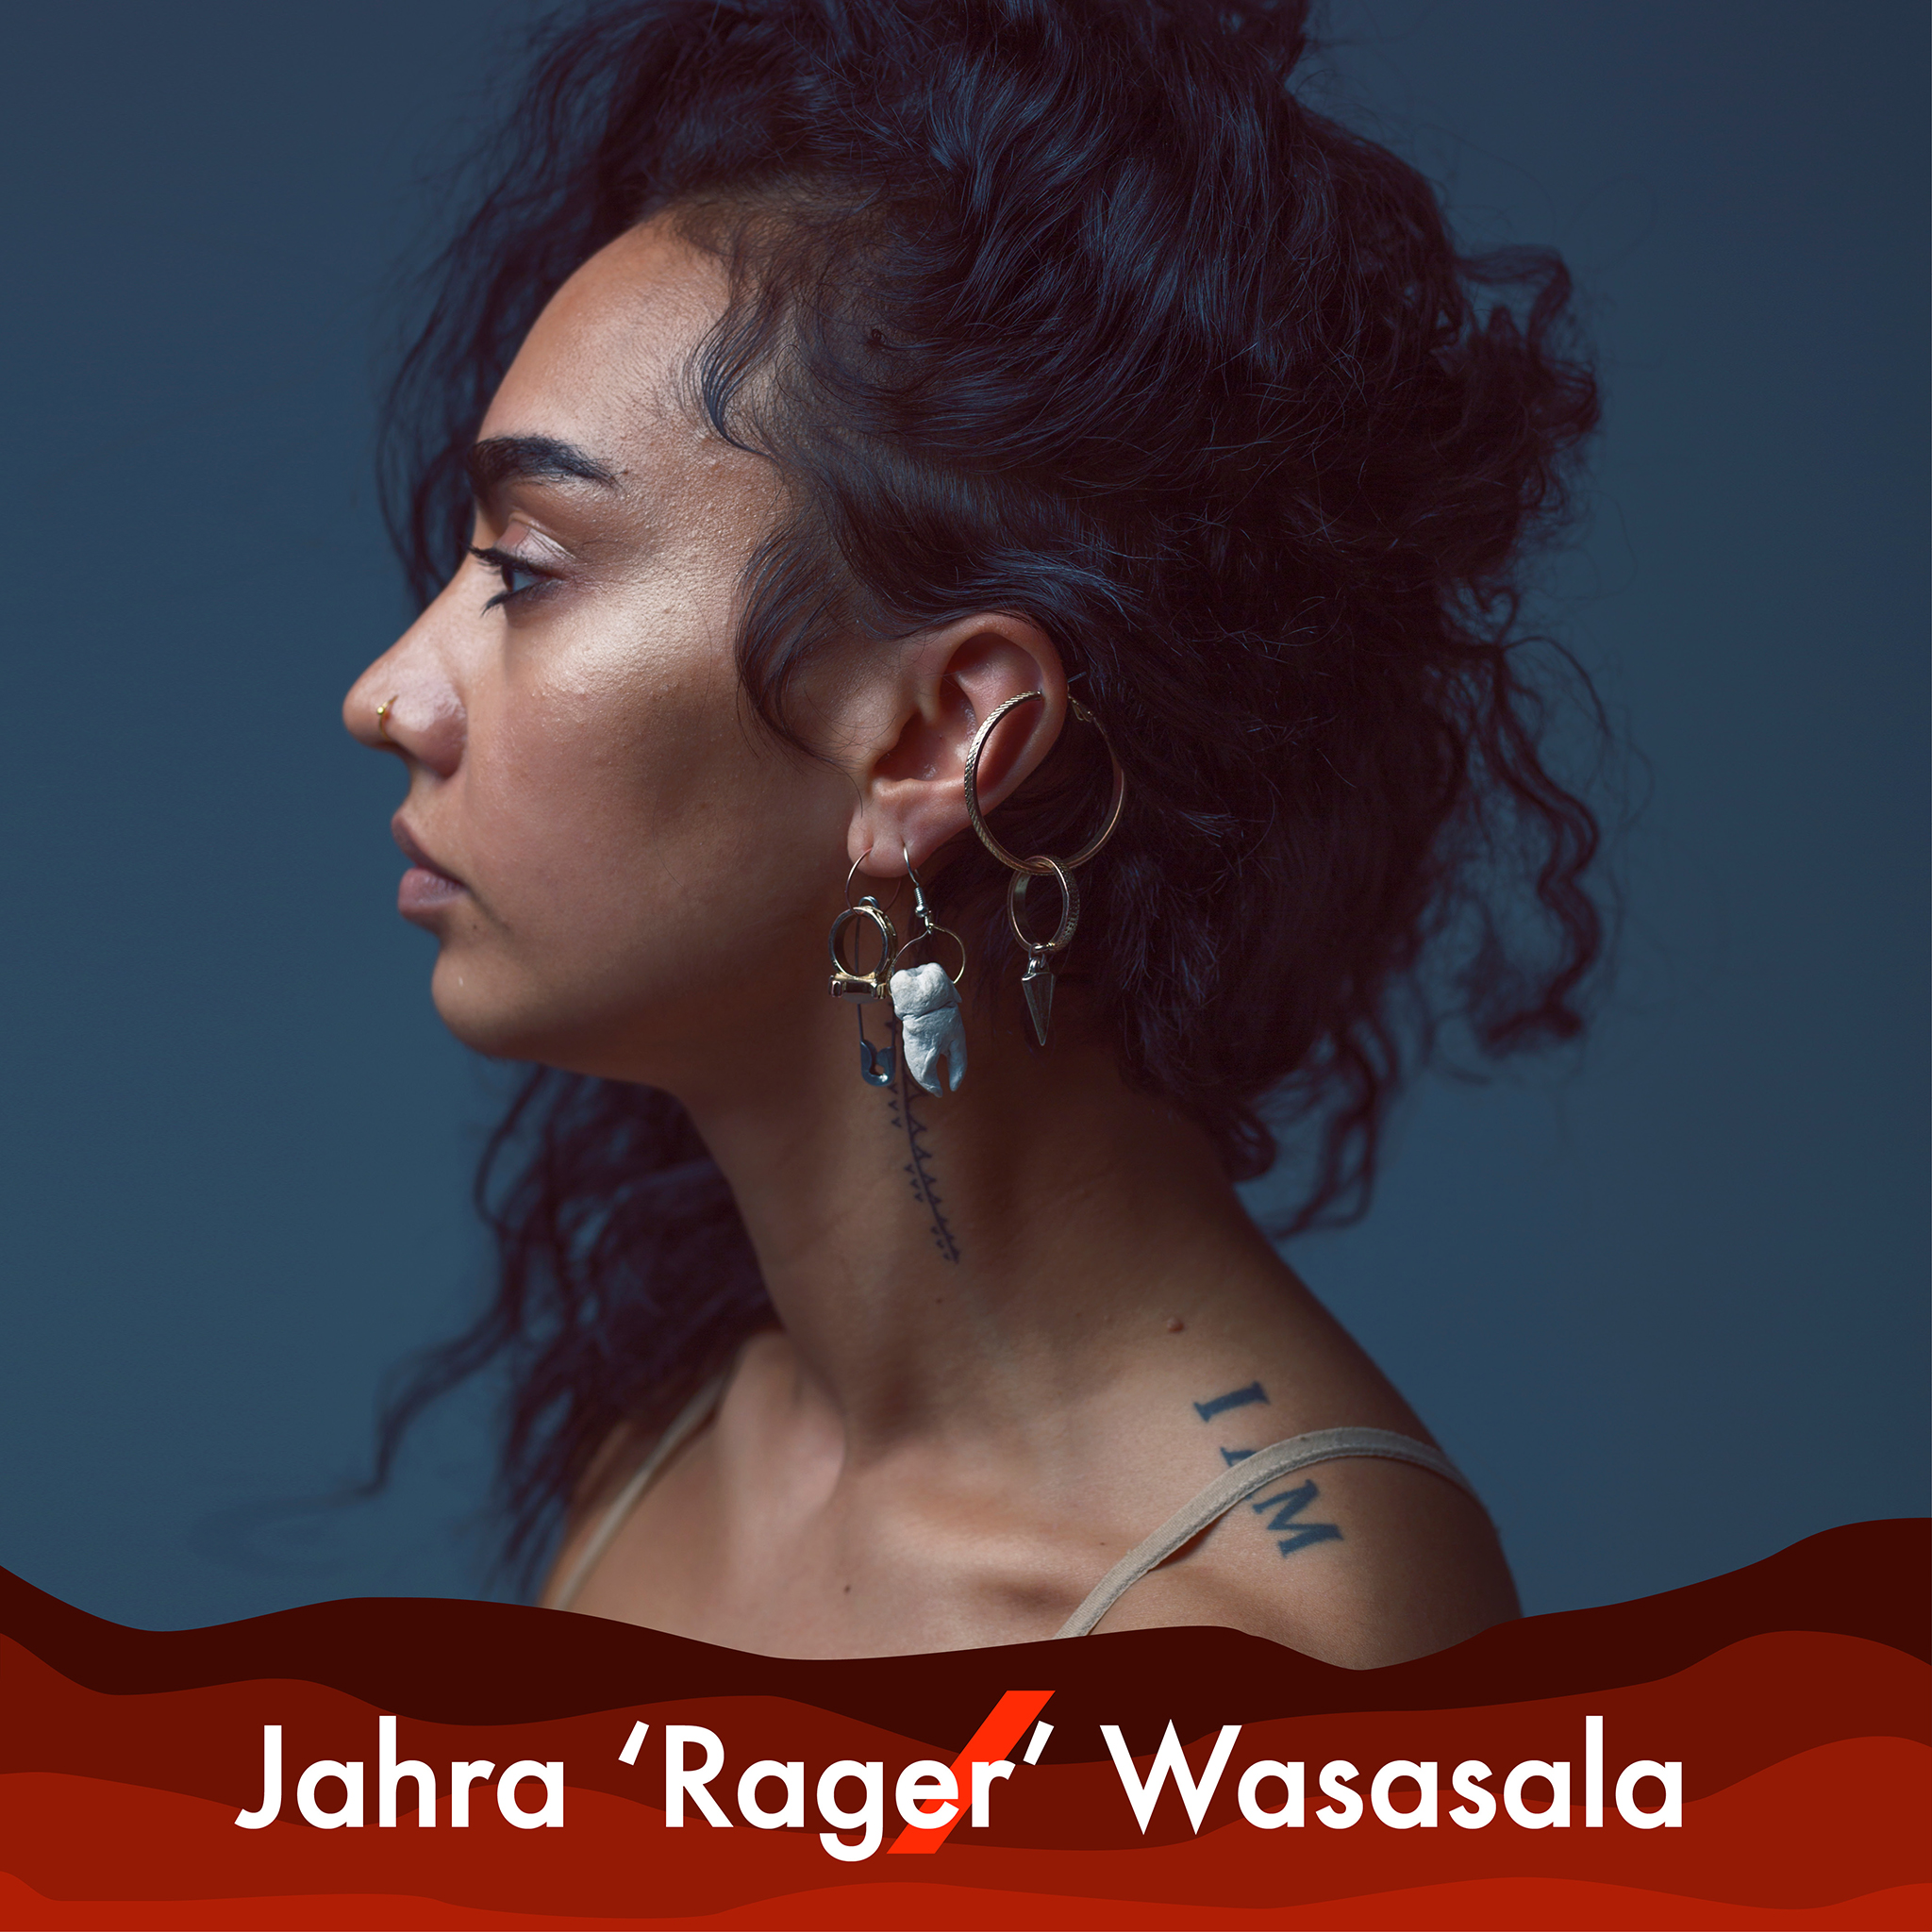 A picture of Jahra 'Rager' Wasasala